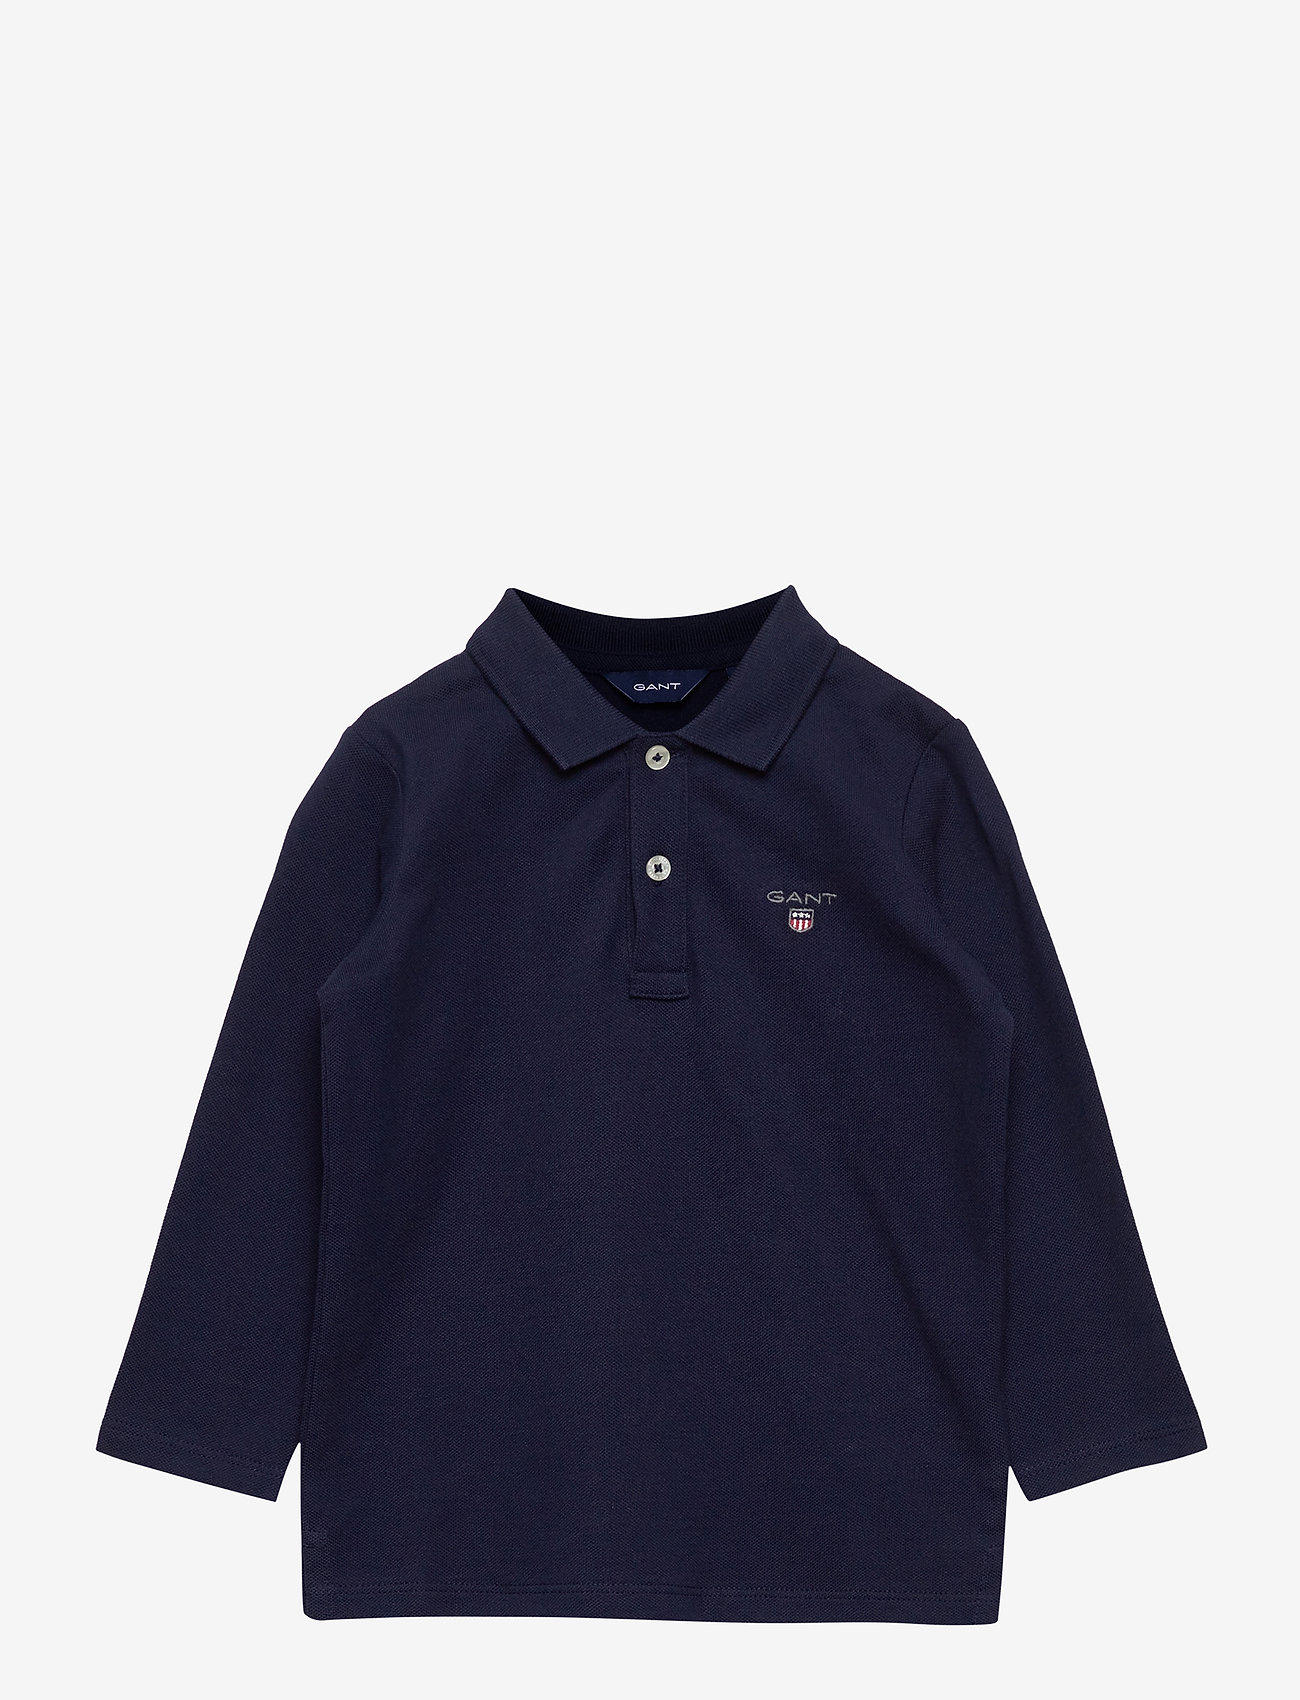 GANT - THE ORIGINAL PIQUE LS RUGGER - polo shirts - evening blue - 0